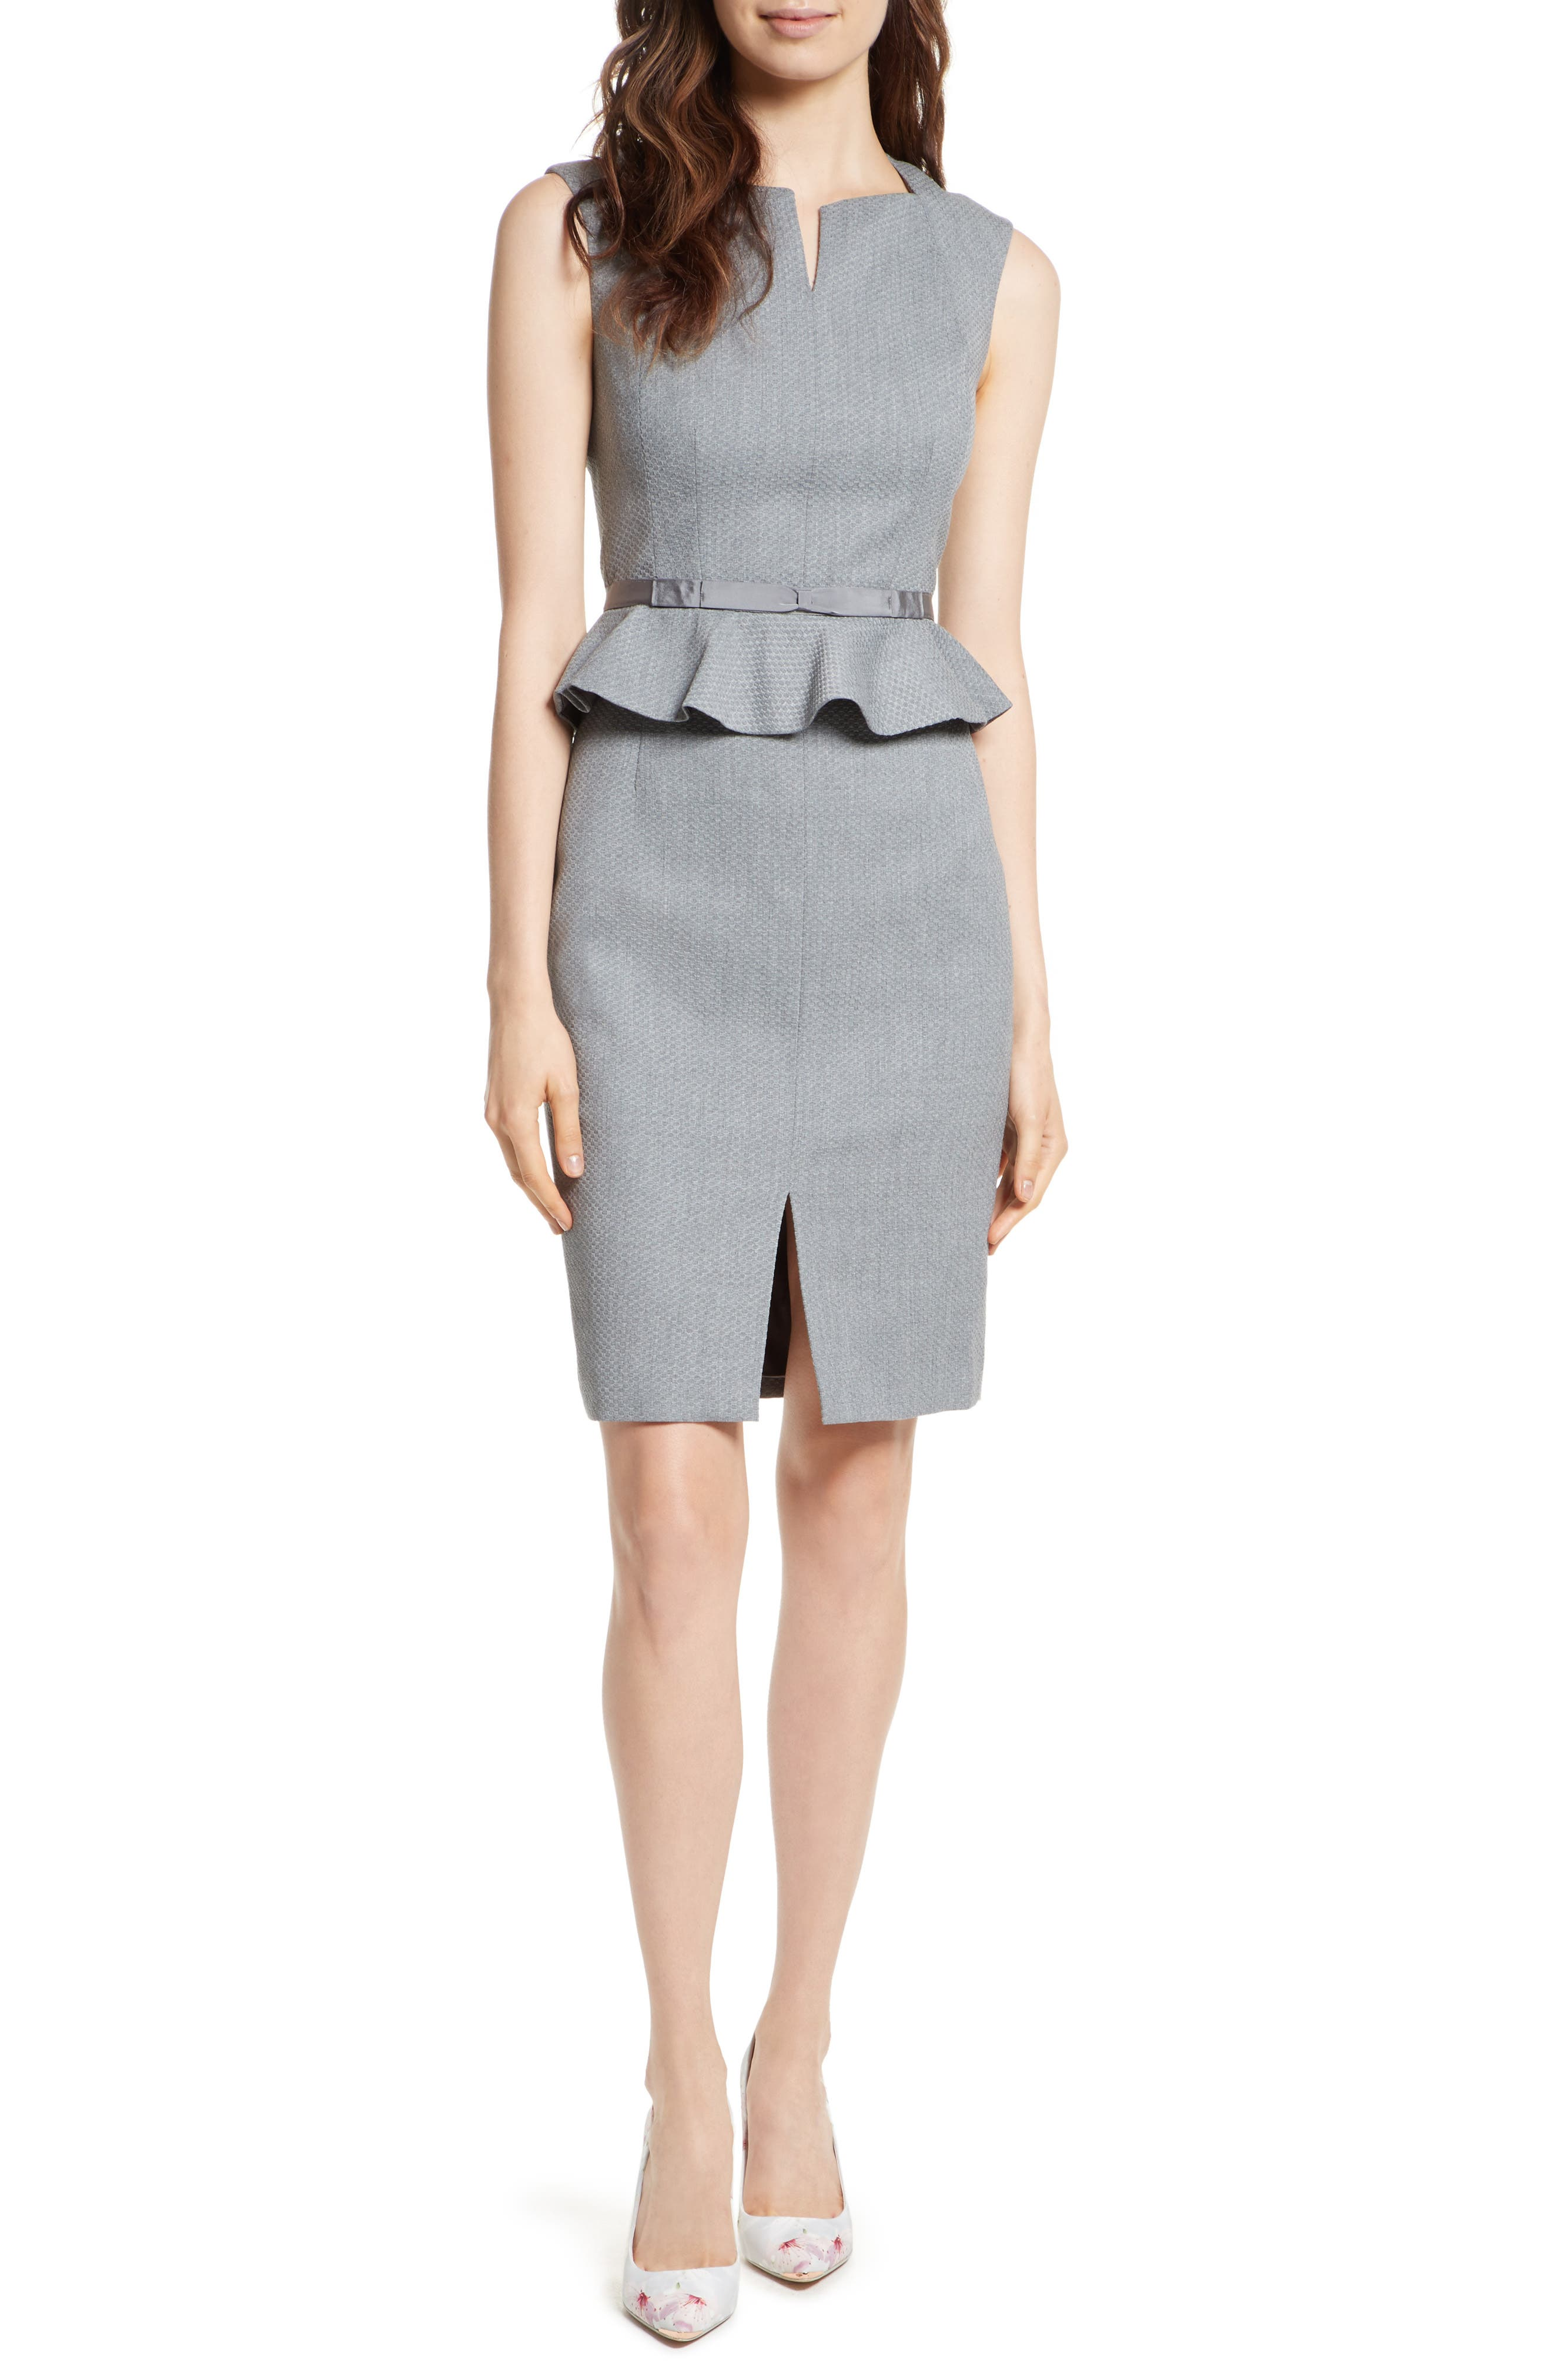 Nadaed Bow Detail Textured Peplum Dress,                         Main,                         color, Mid Grey